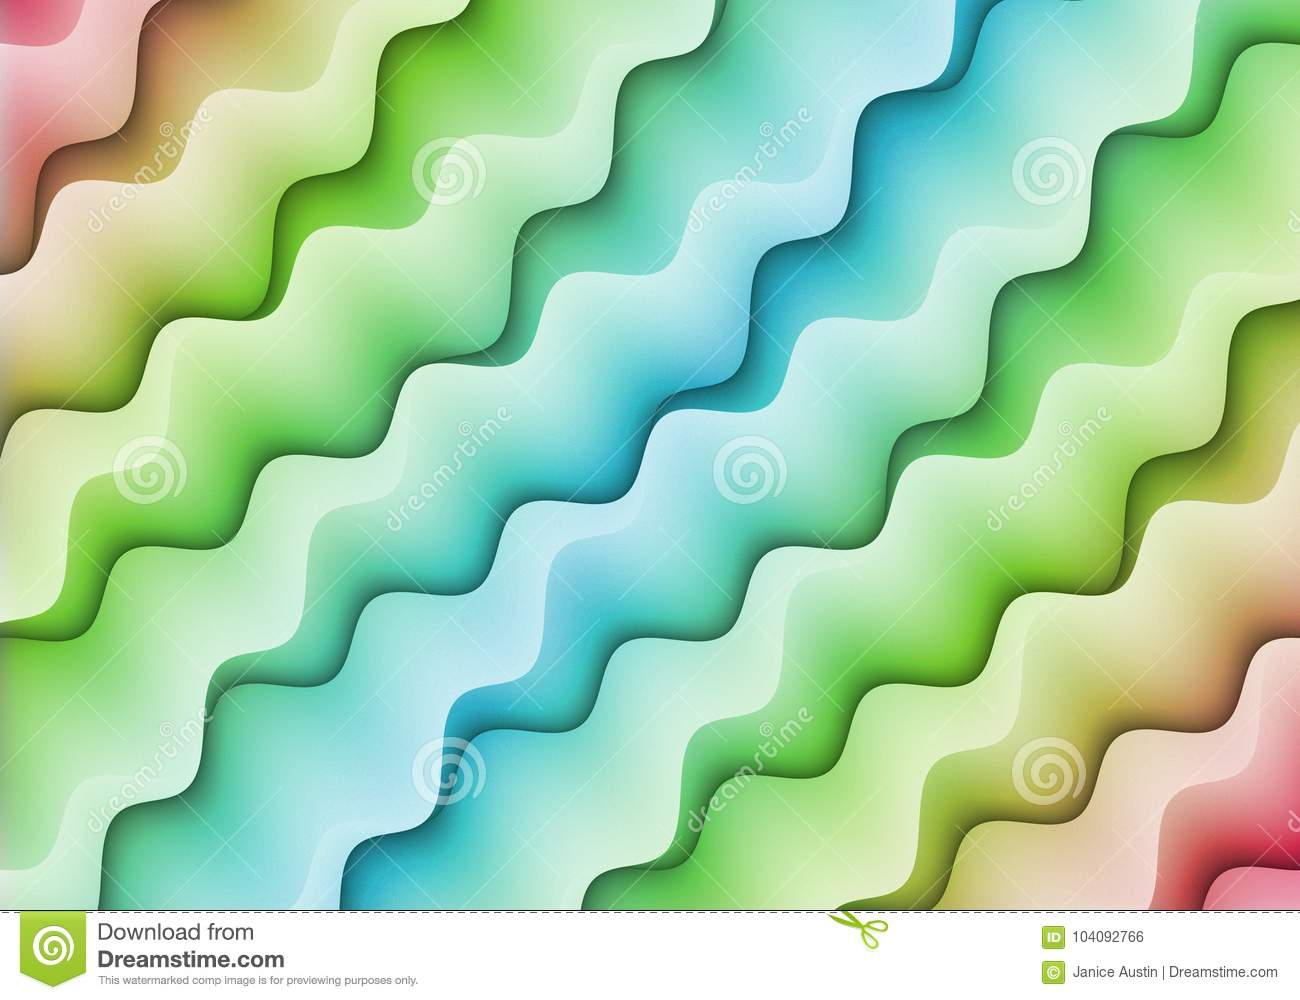 Abstract Bright Pink Green Blue Colorful Diagonal Squiggle Shapes Pattern Design Background